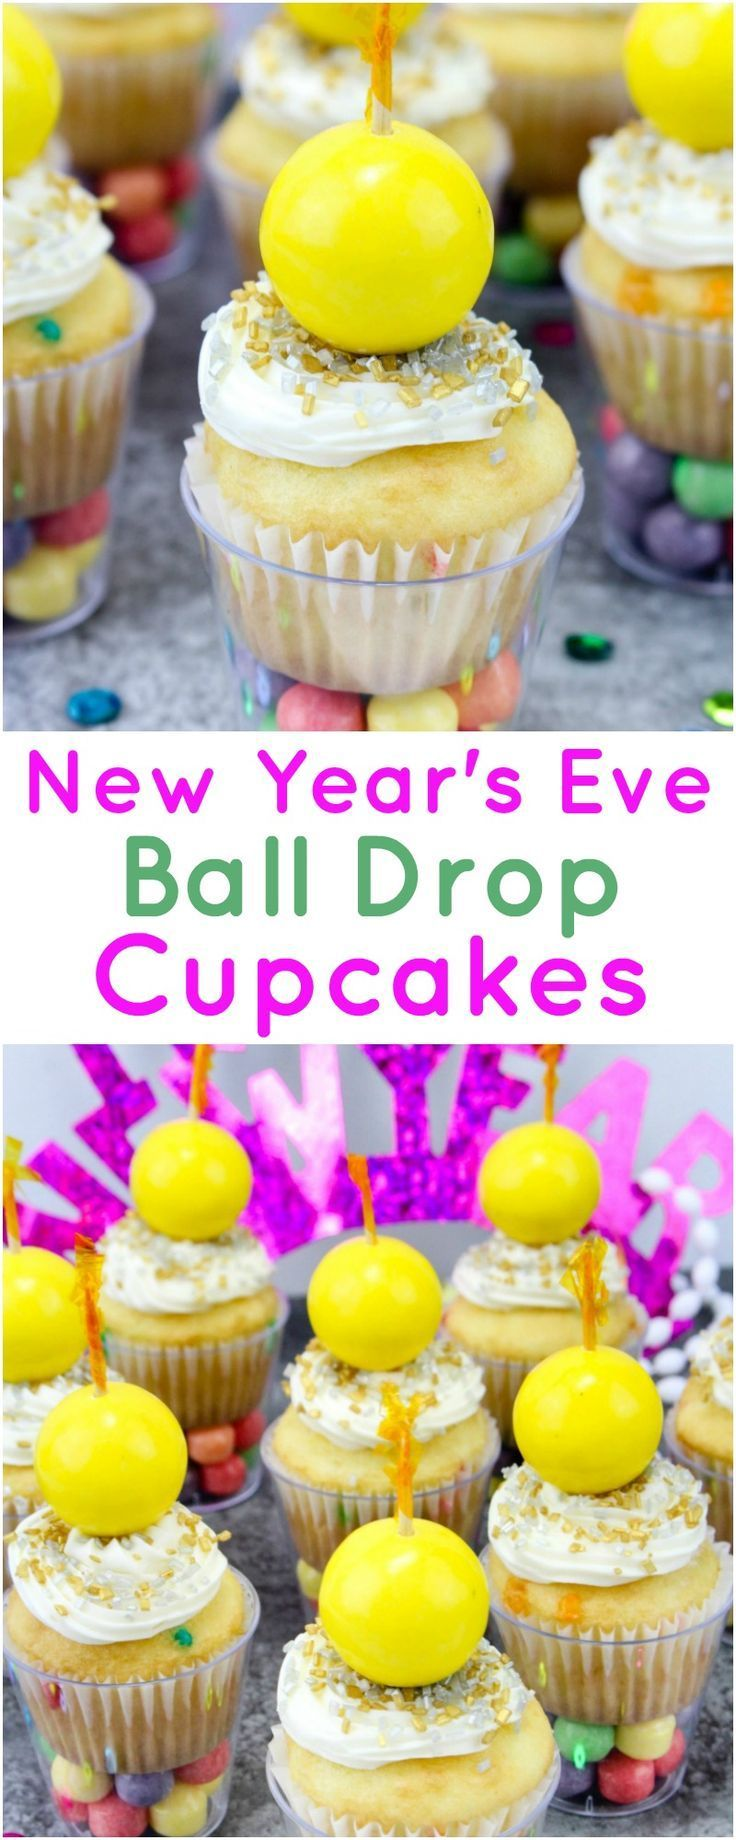 New Year's Eve Ball Drop Cupcakes   New years eve dessert ...